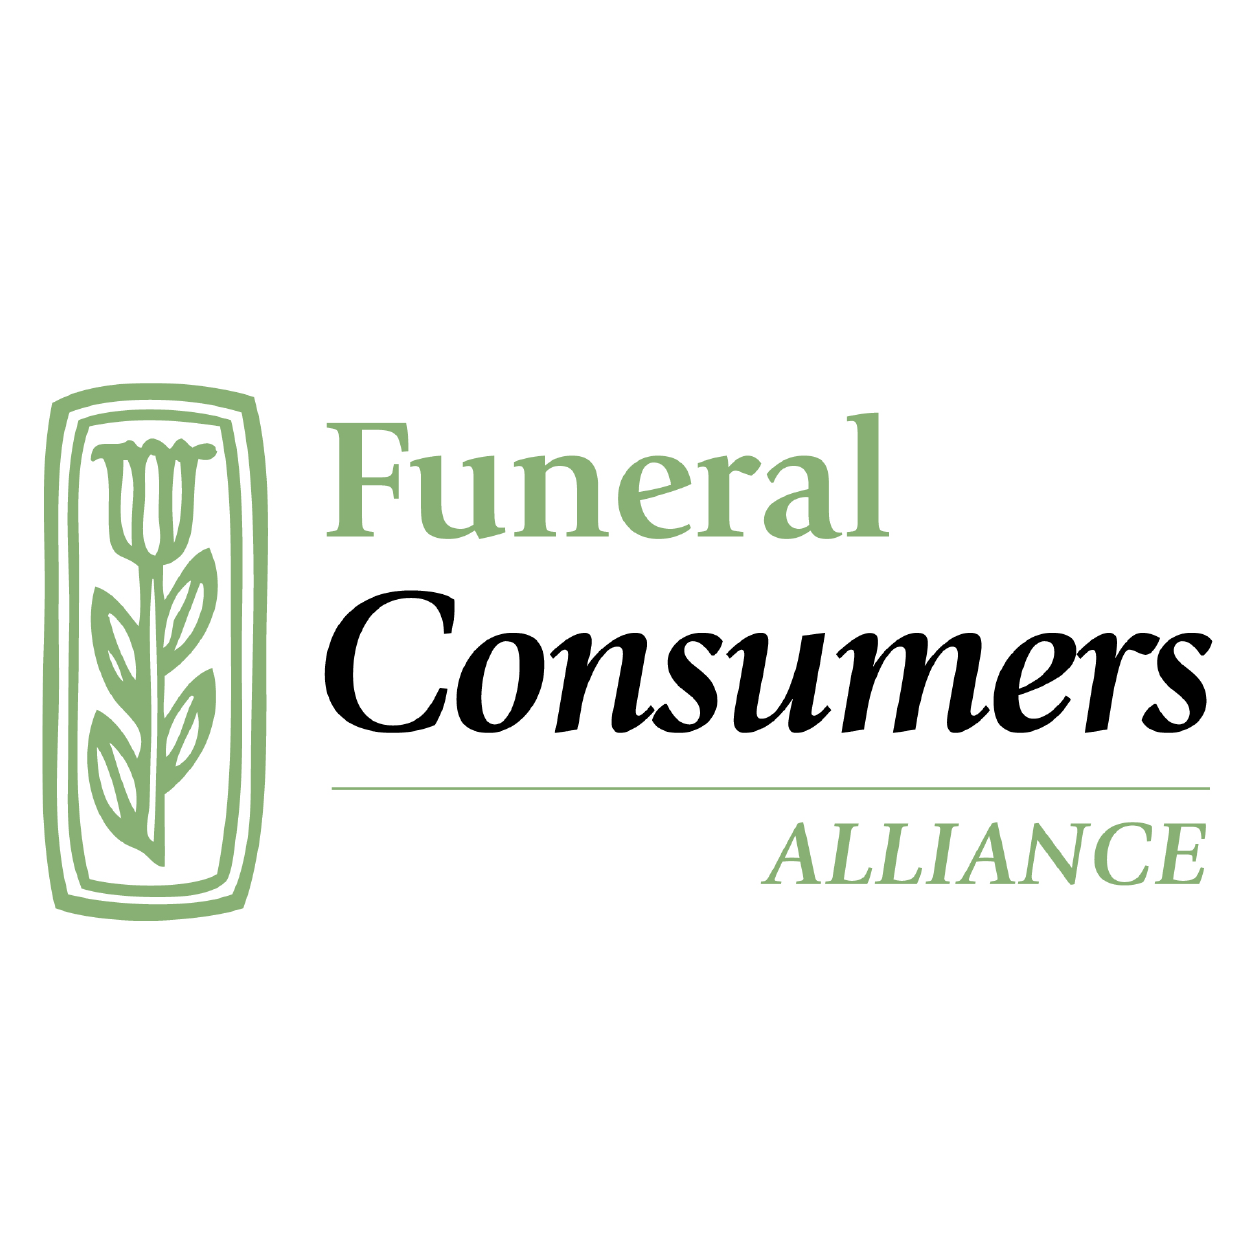 Ensuring that consumers are fully prepared and protected when planning a funeral for themselves or their loved ones.